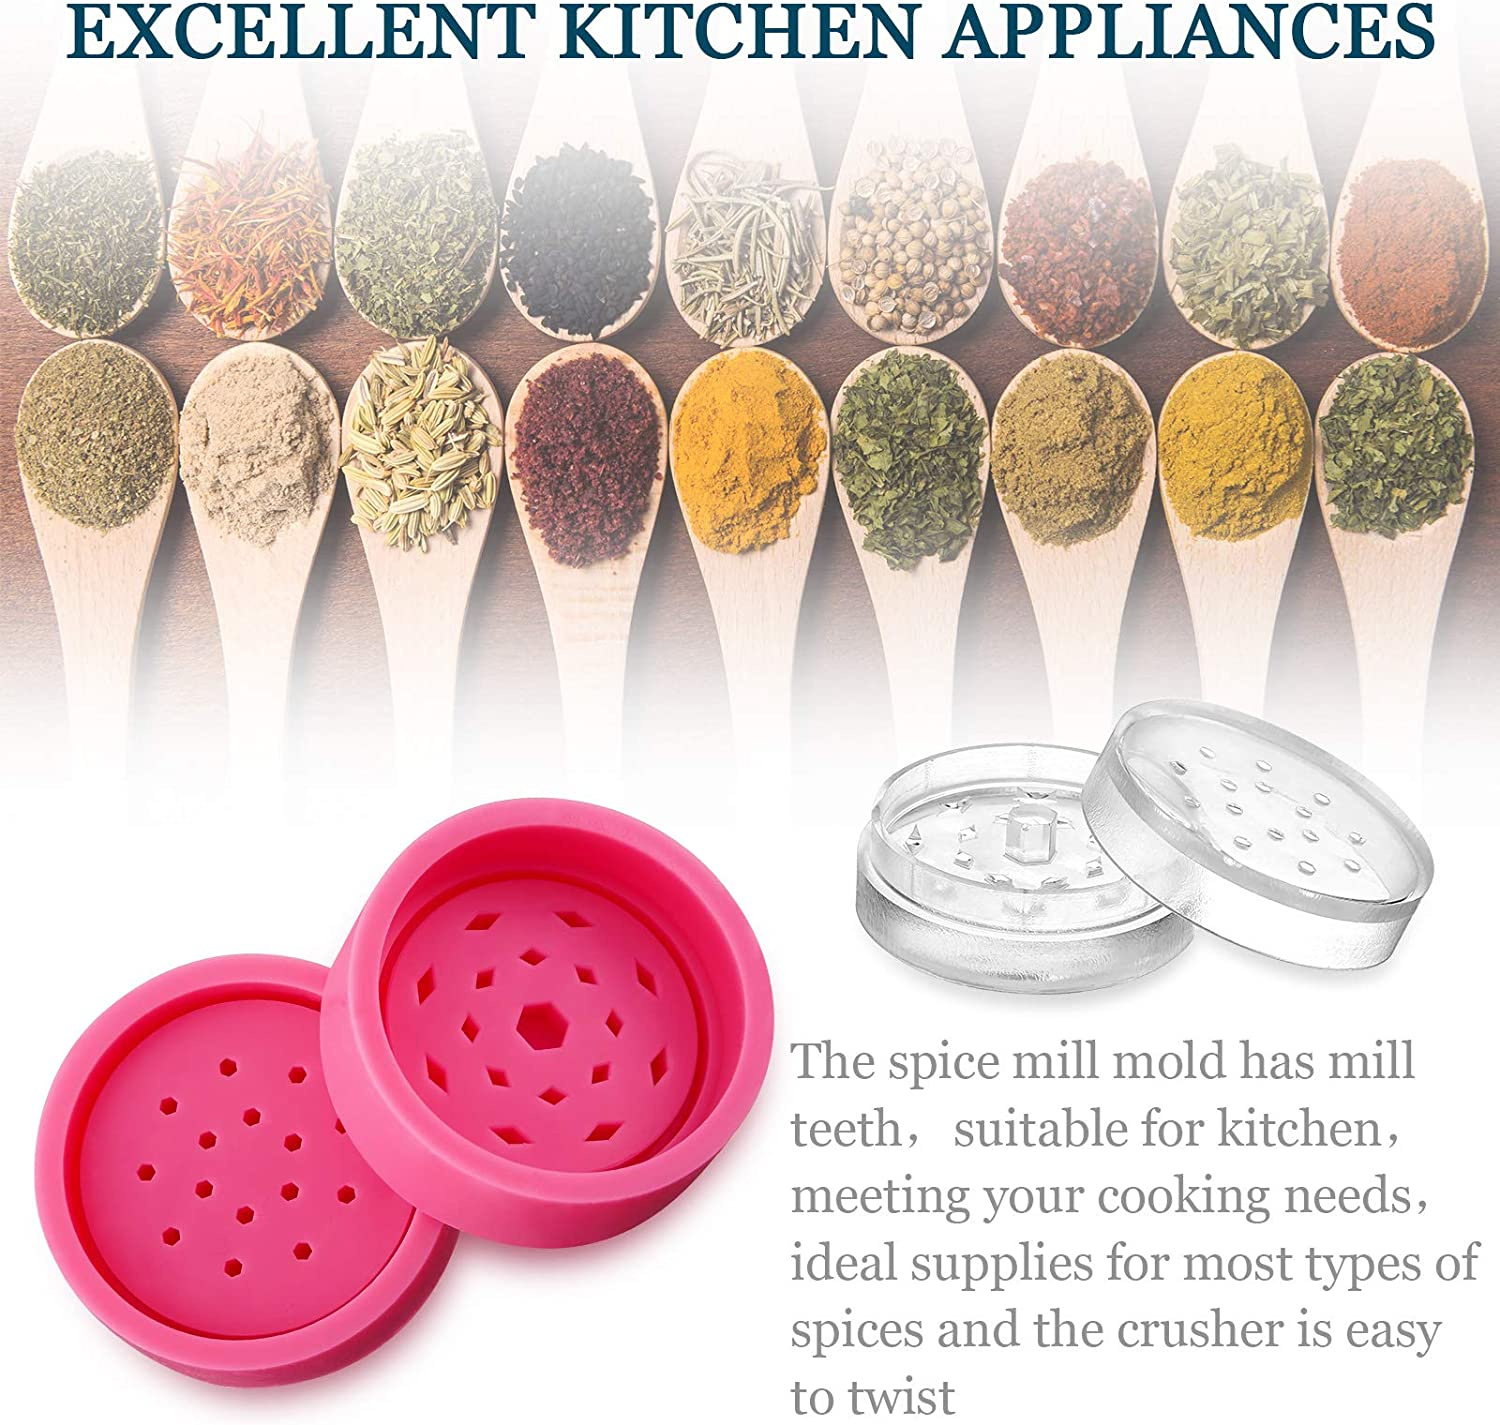 4 Pieces Herb Grinder Mold with 2 Pieces Silicone Dropper Spice Epoxy Resin Mold Grinder Leaf Herb Spice Crusher Silicone Mould DIY Crafts Baking Tools for Making Candle Soap 2 Pairs